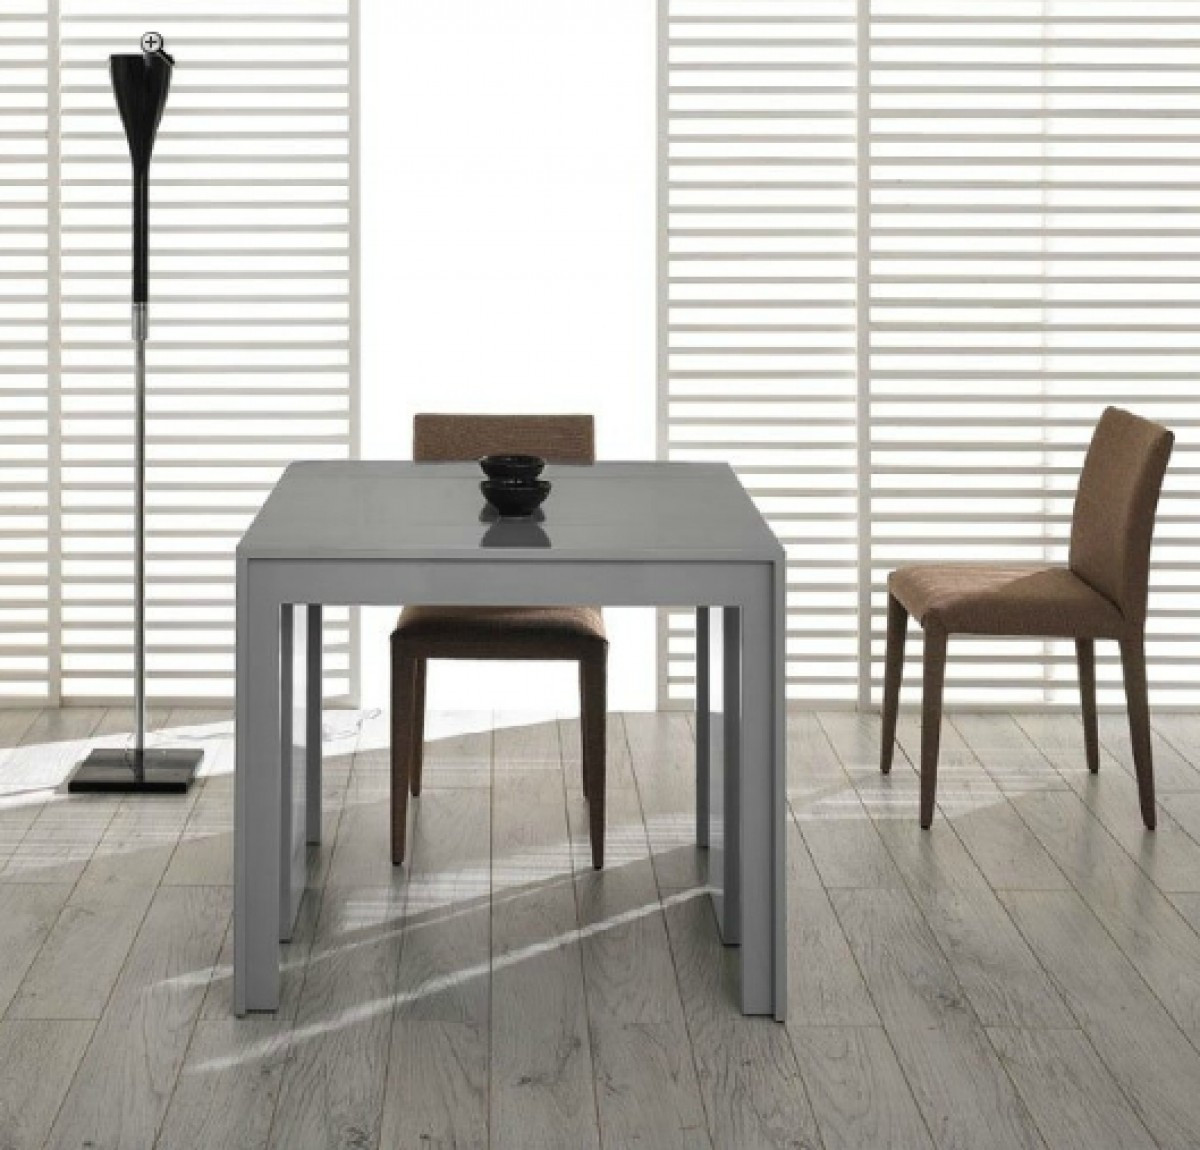 Best ideas about Gray Dining Table . Save or Pin Modrest Morph Modern Ultra pact Extendable Grey Gloss Now.